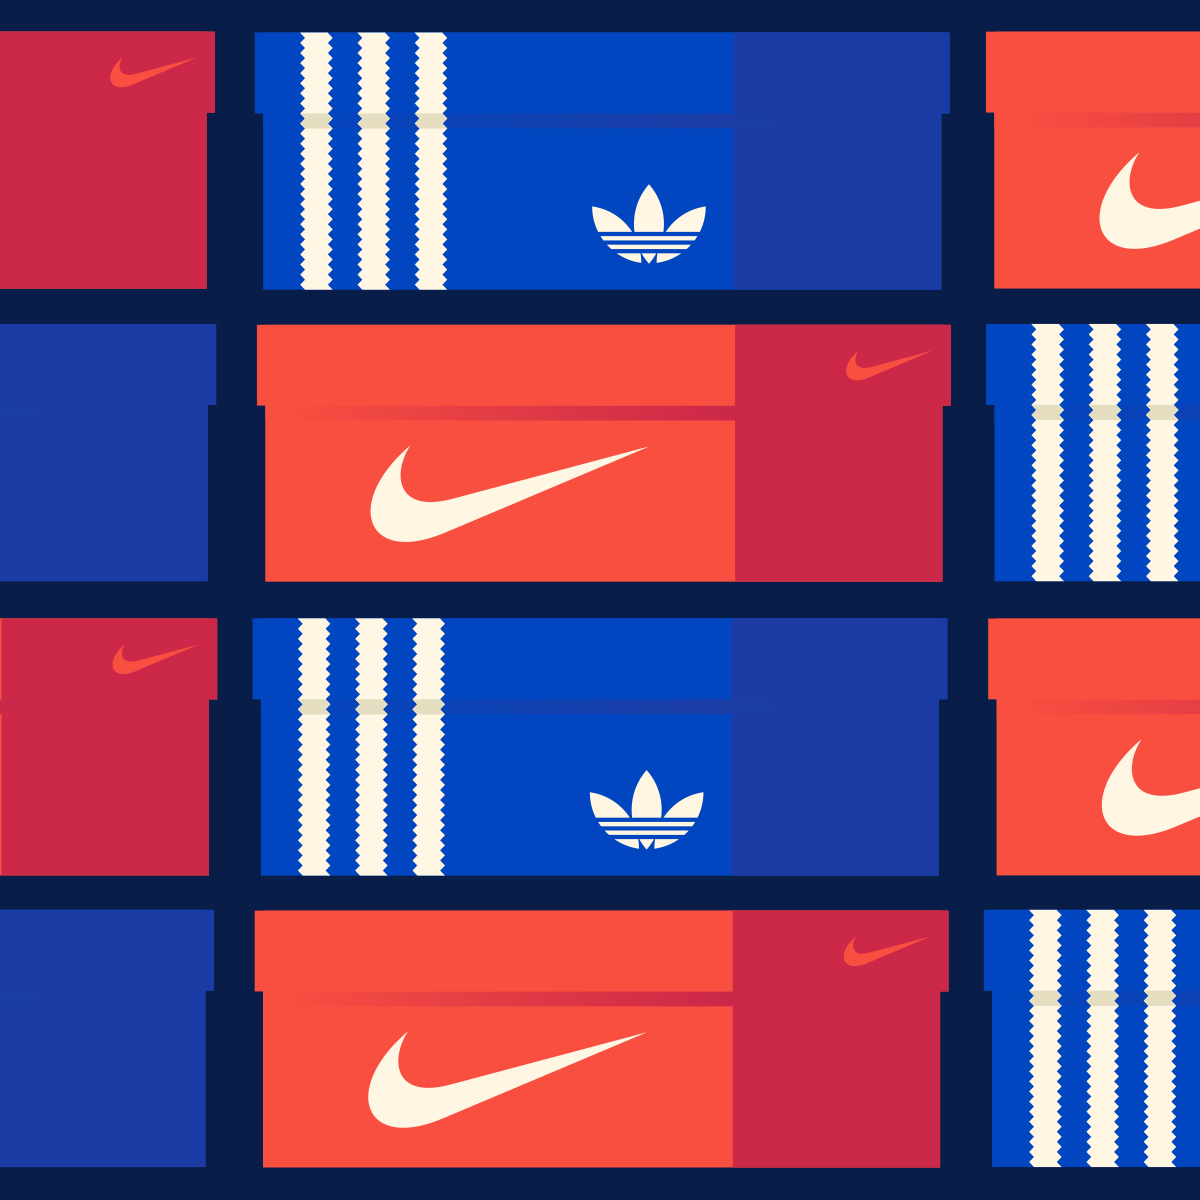 Nike and Adidas Shoe Box Illustration